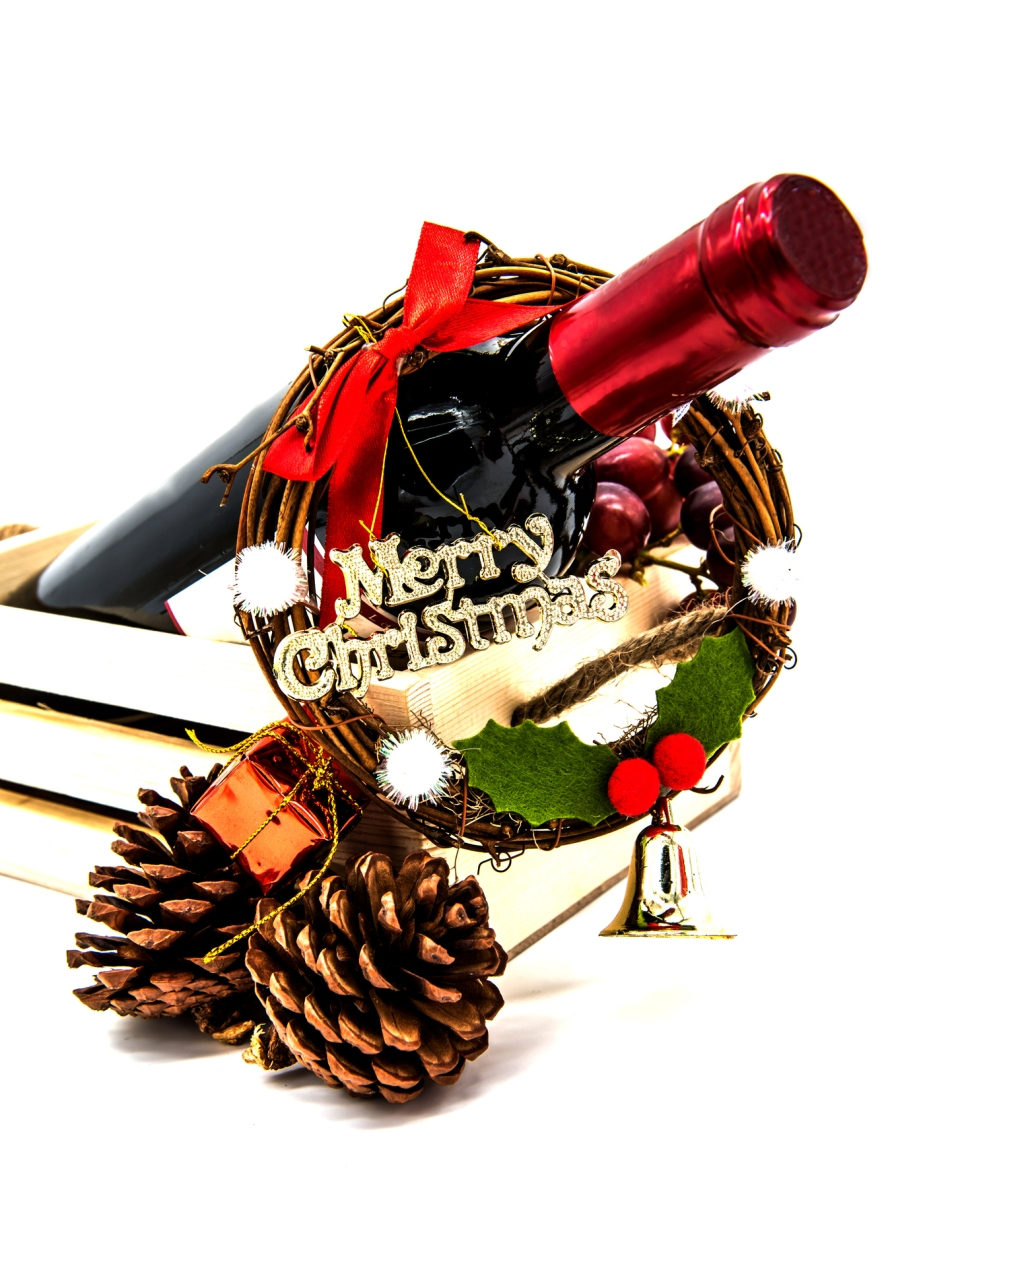 Red wine for Christmas celebration, isolated white background